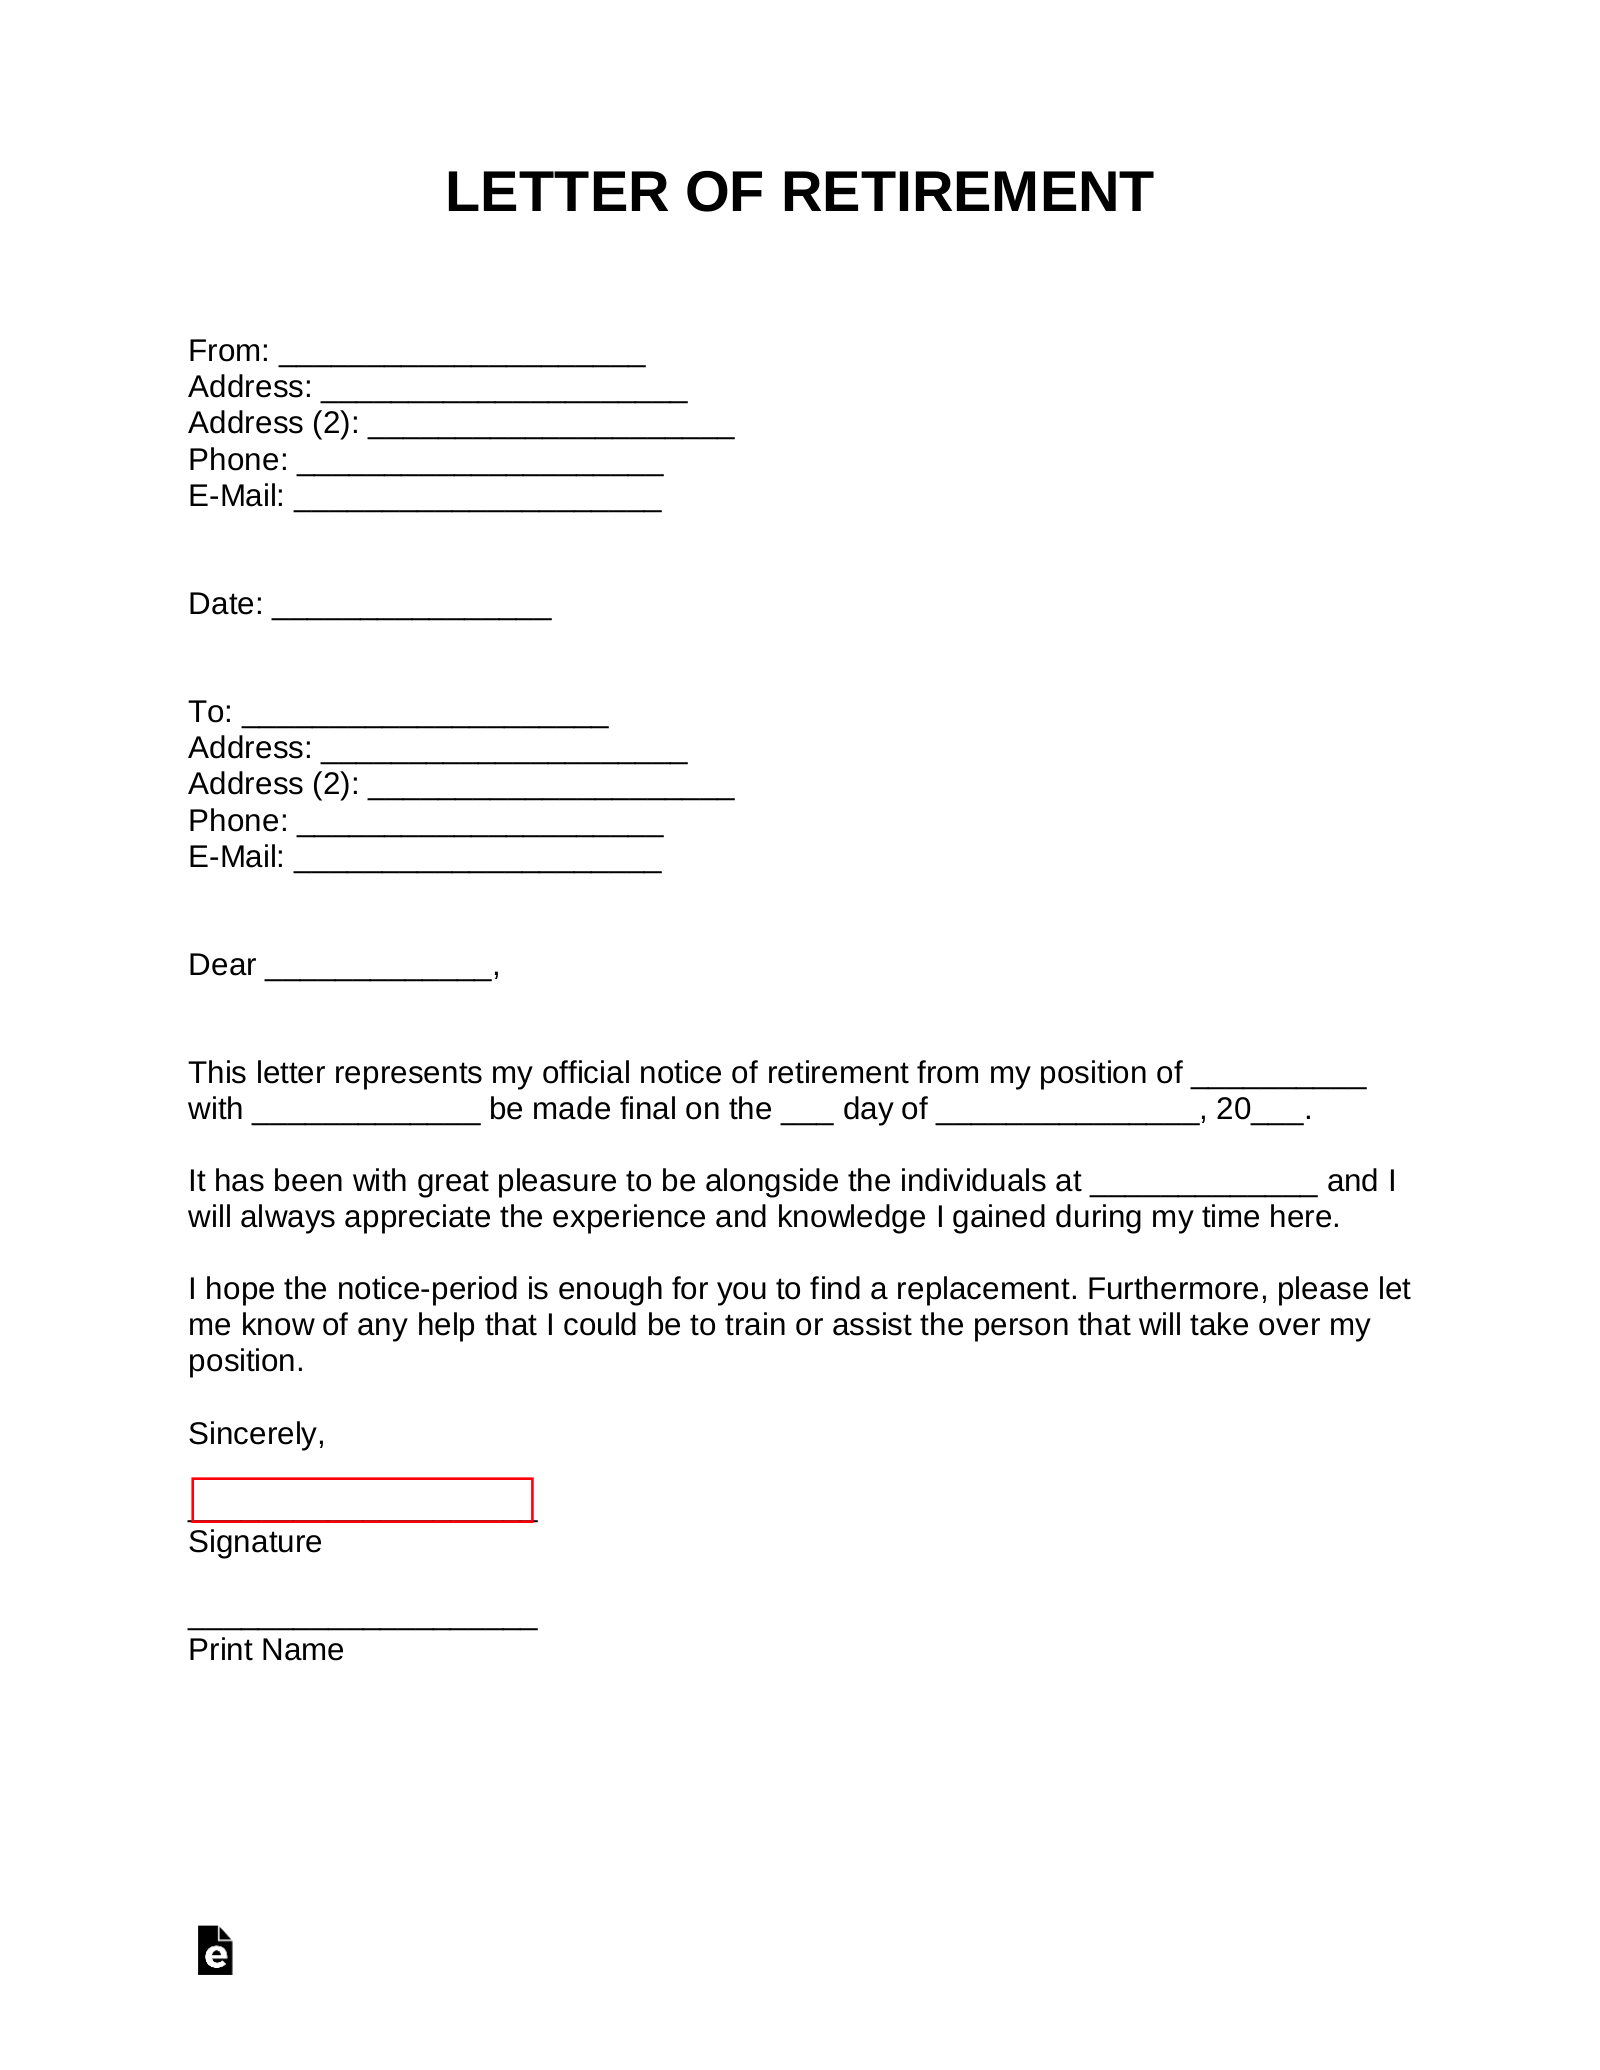 Free Retirement Letter Template - with Samples - Word  PDF – eForms